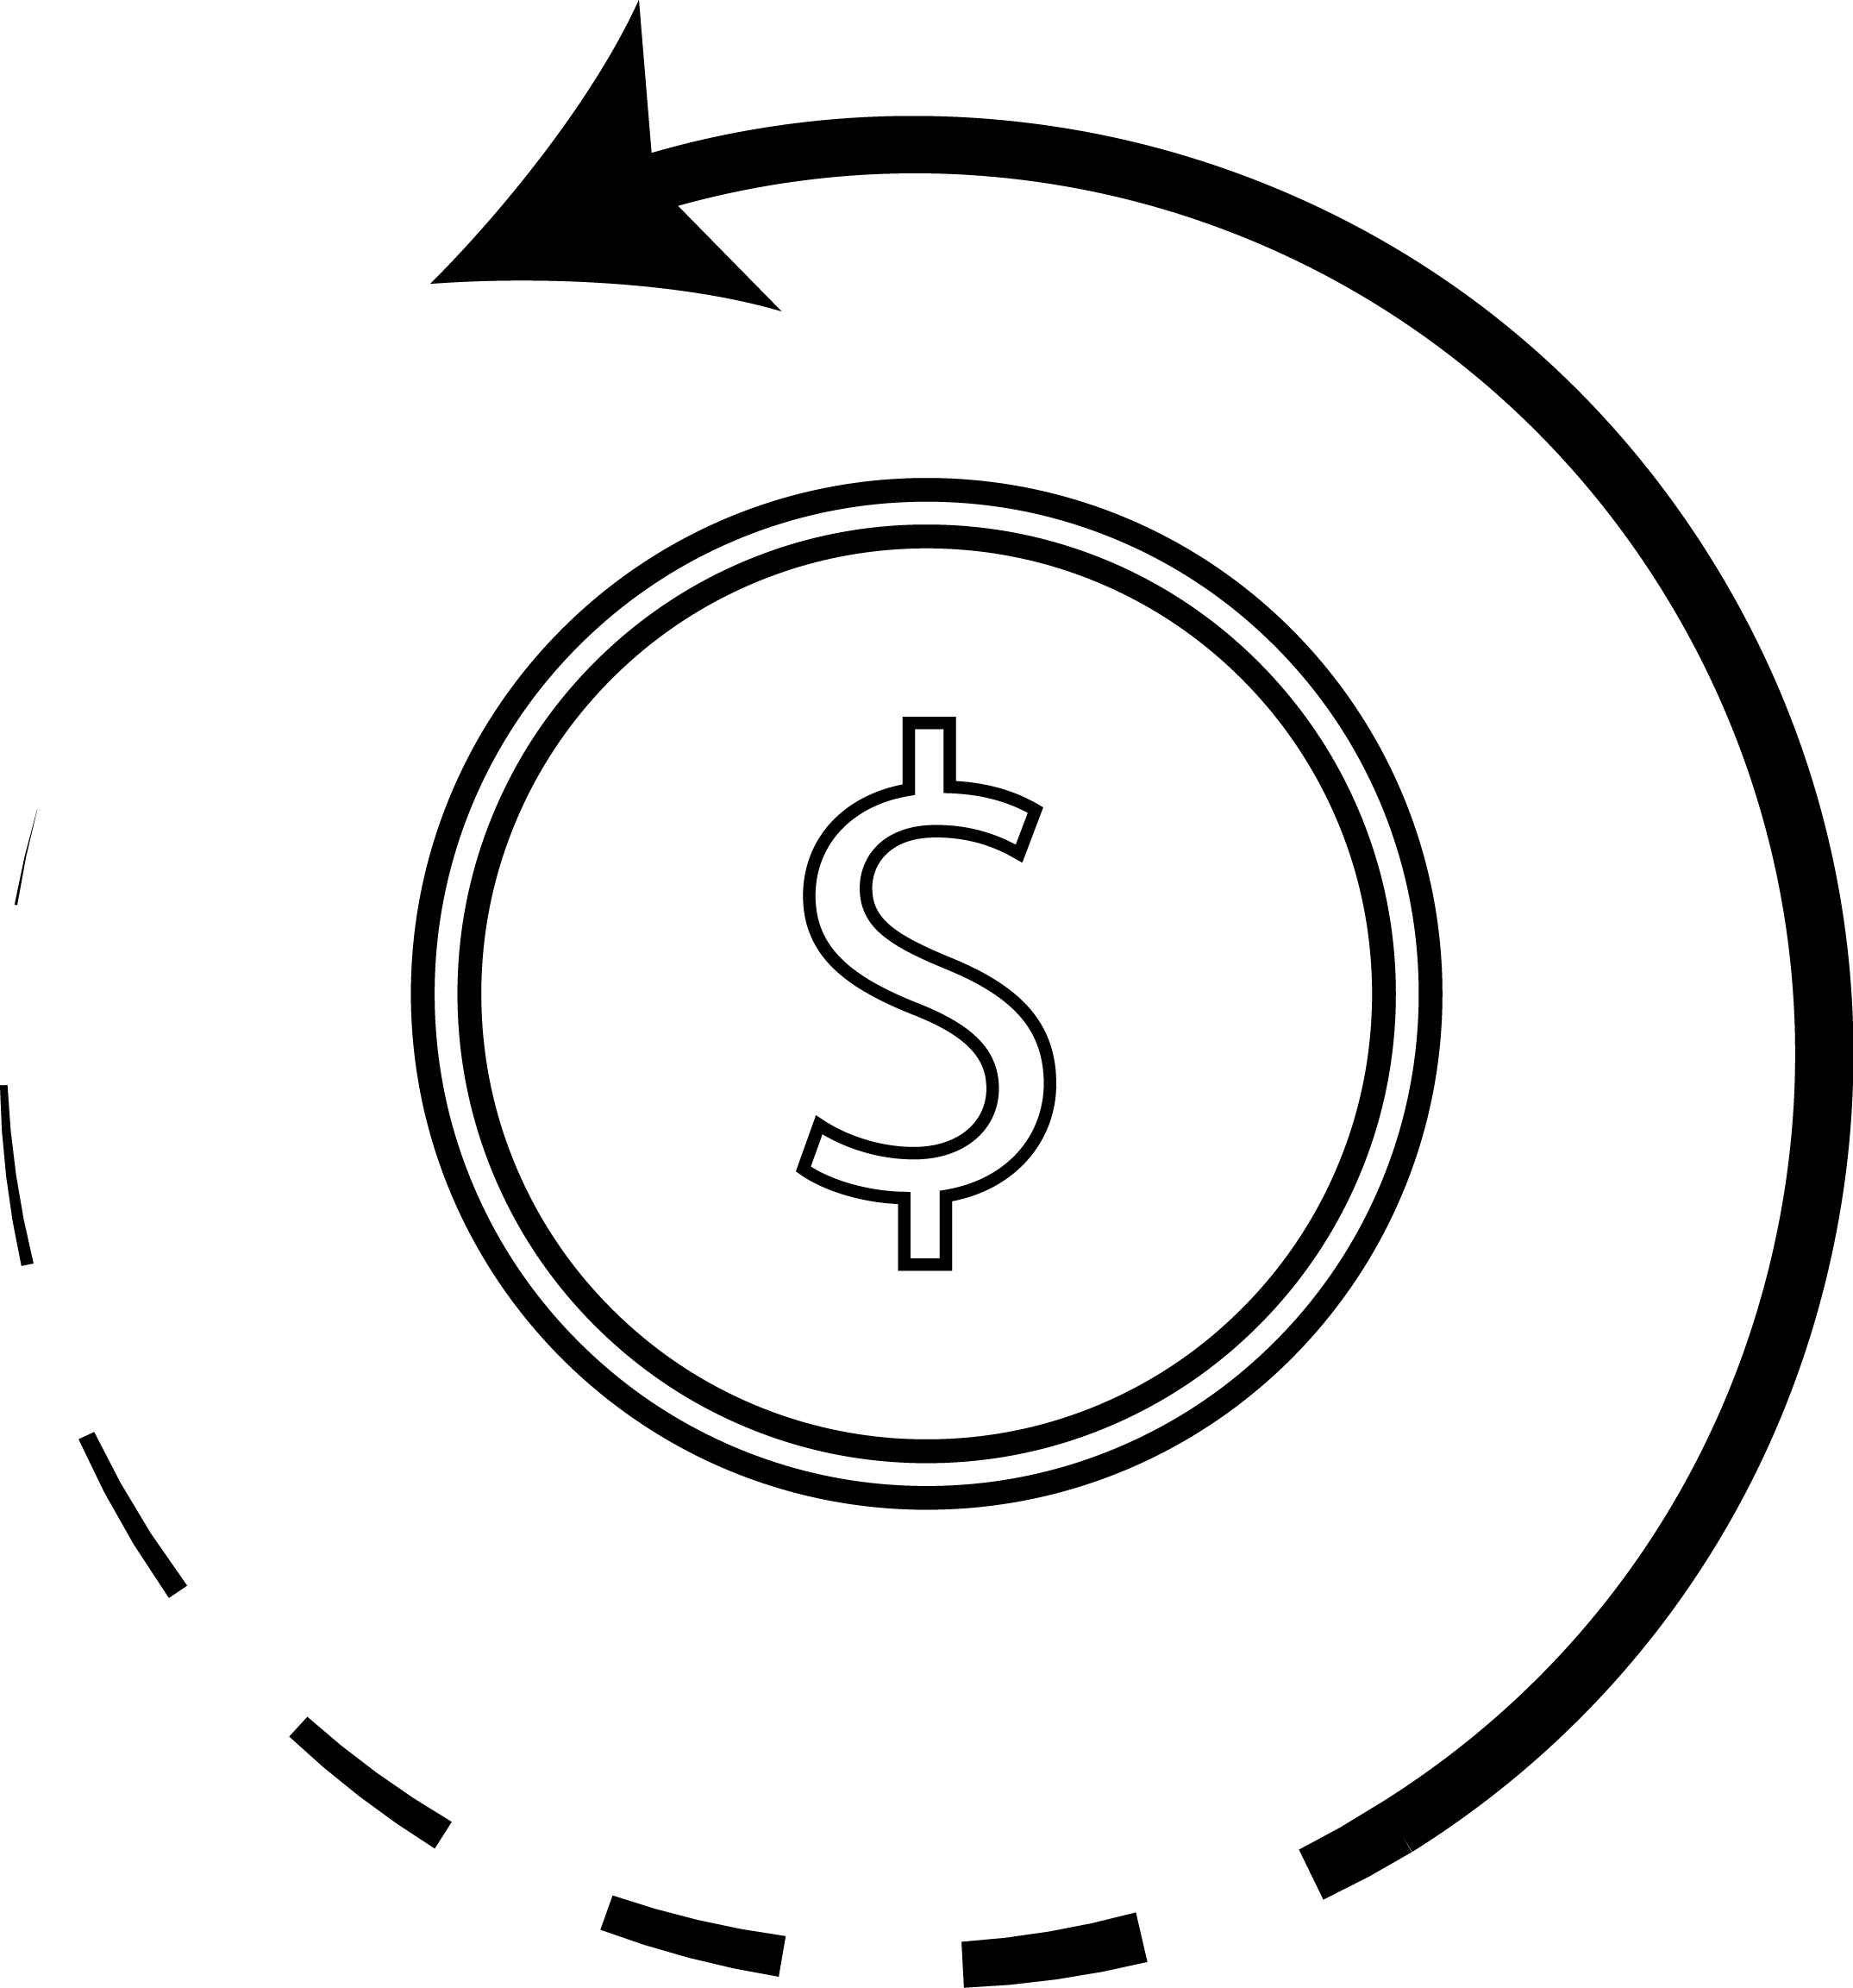 cashback icon with coin by 09910190 thehungryjpeg com cashback icon with coin by 09910190